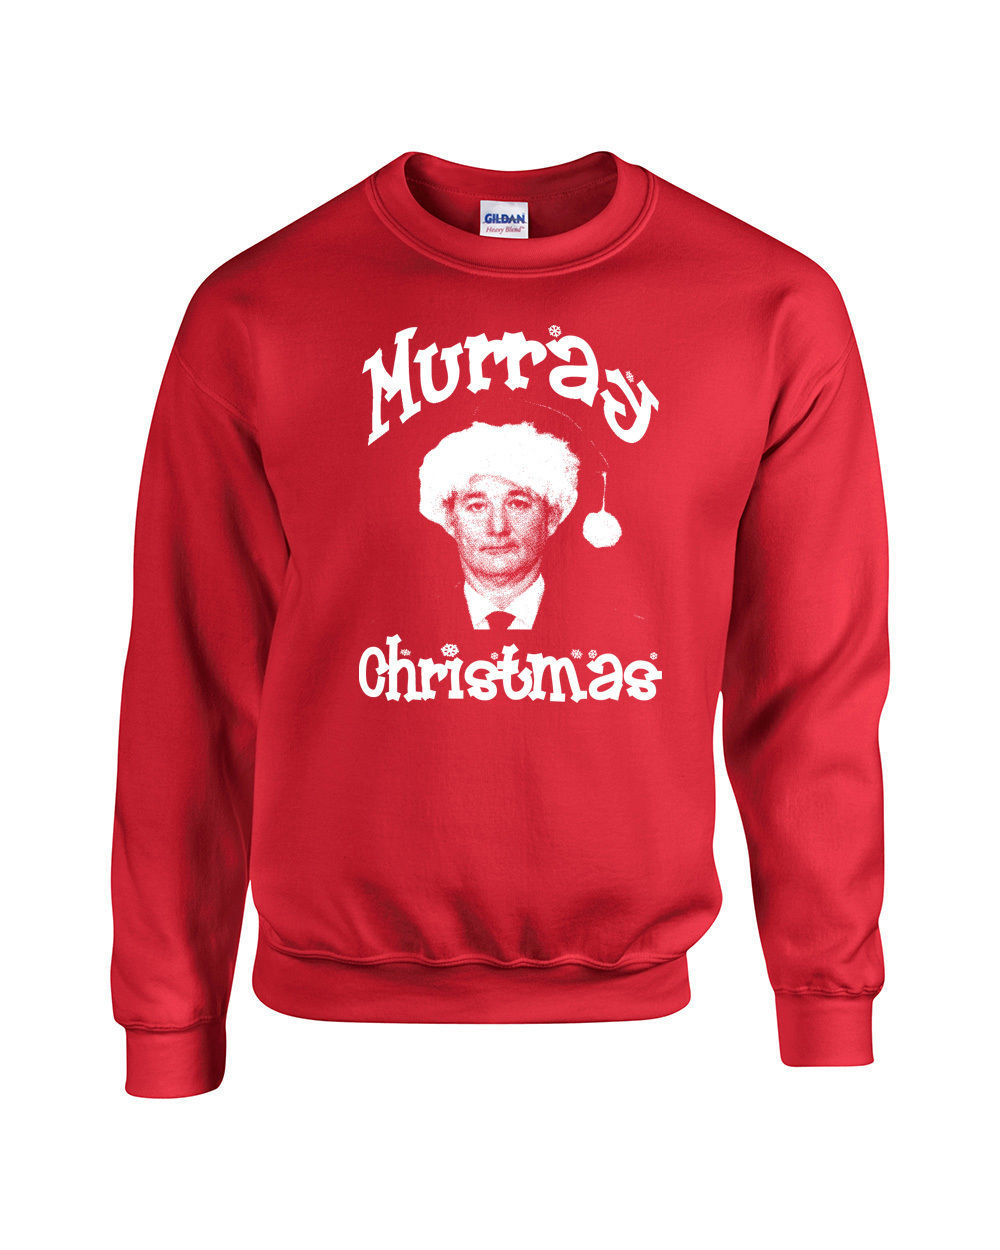 Murray Christmas Bill Merry XMas Holiday Retro Unisex Crew 530